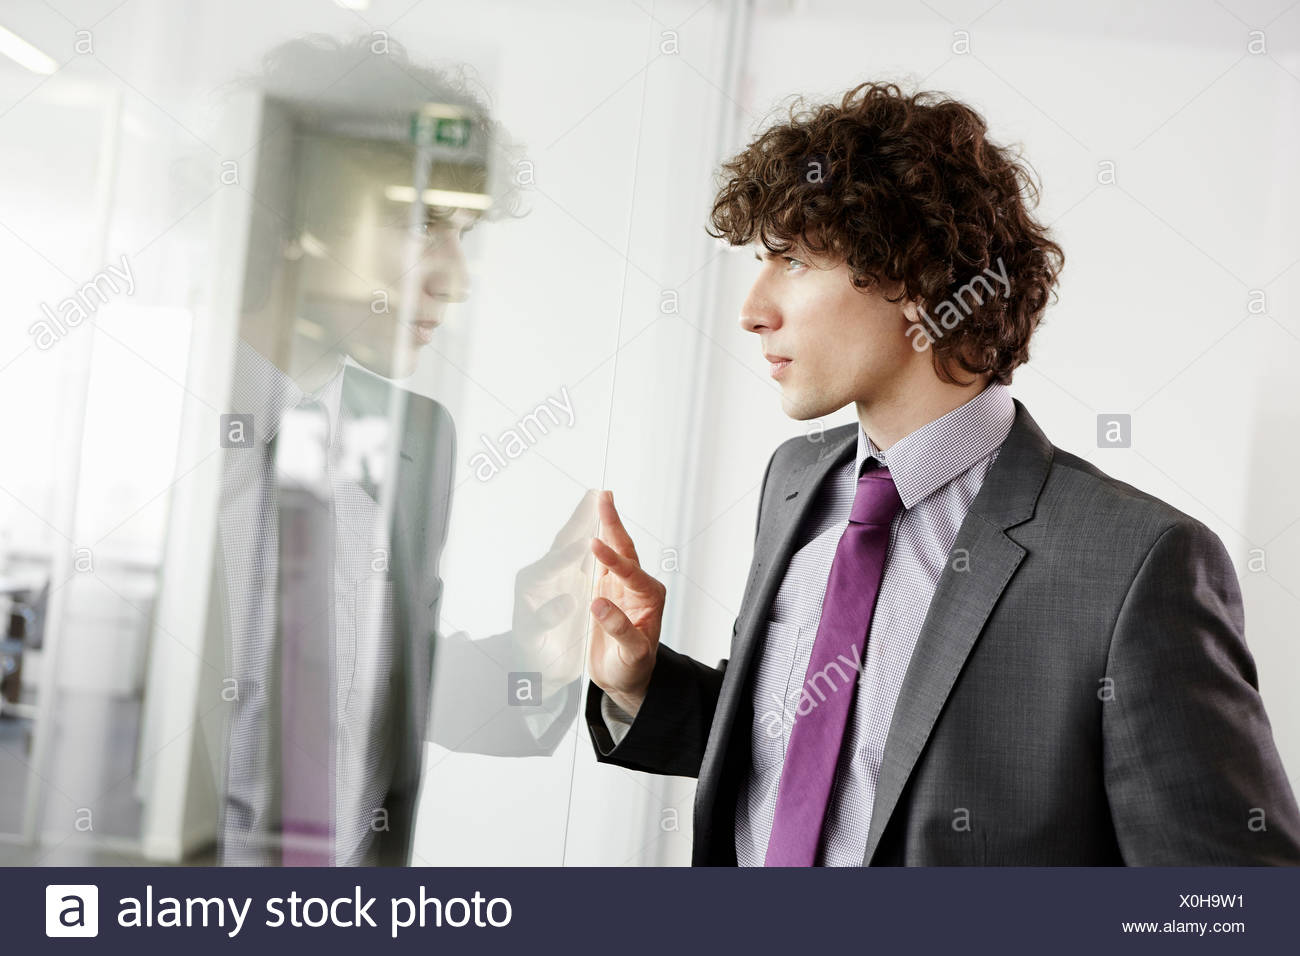 Businessman looking through glass wall, with reflection - Stock Image